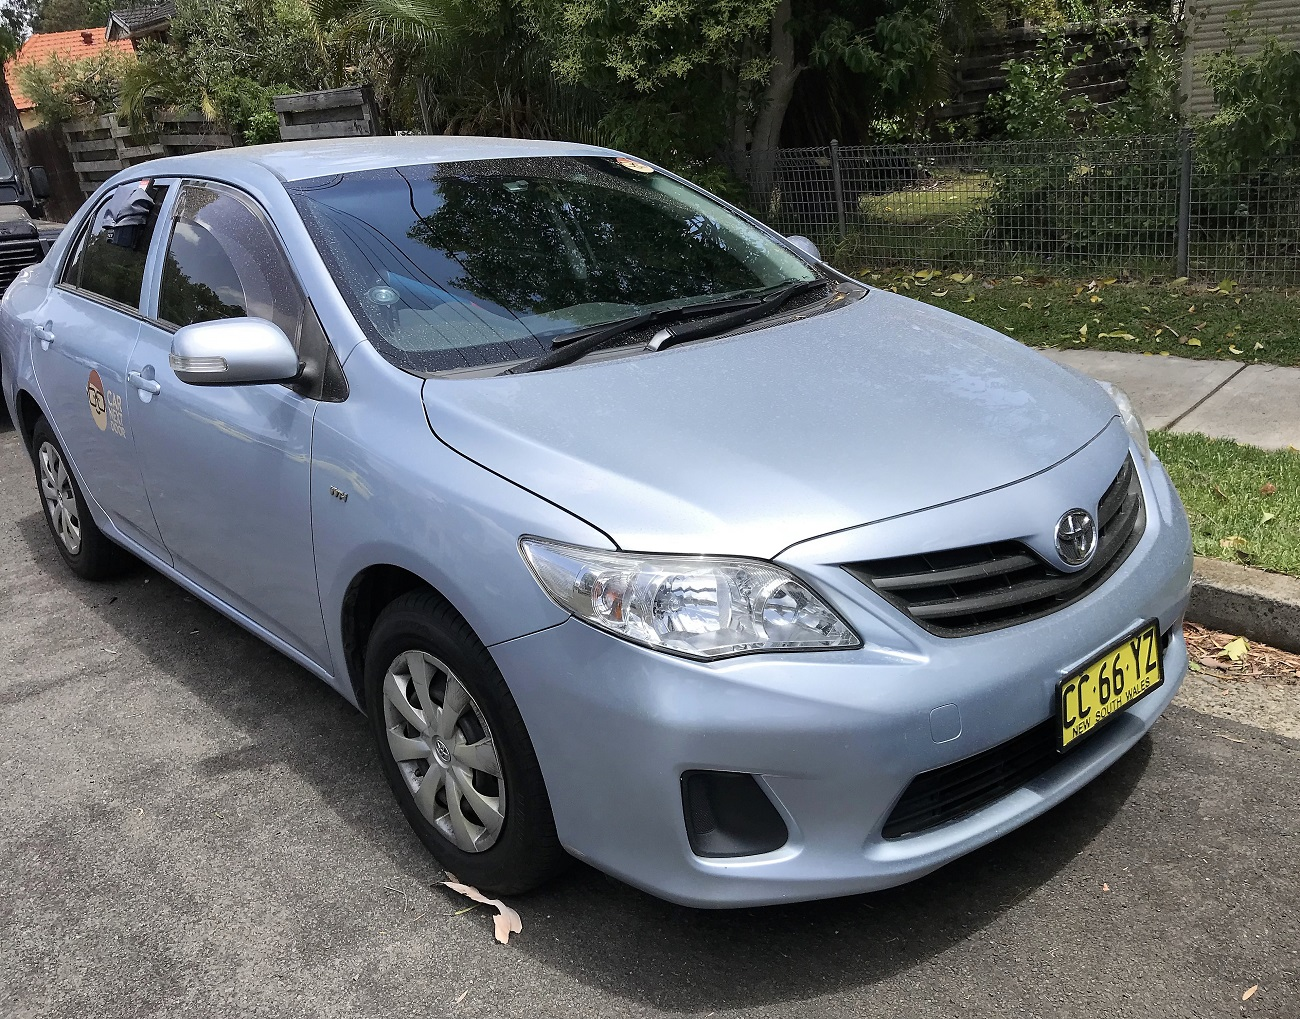 Picture of Xaosong's 2012 Toyota Corolla